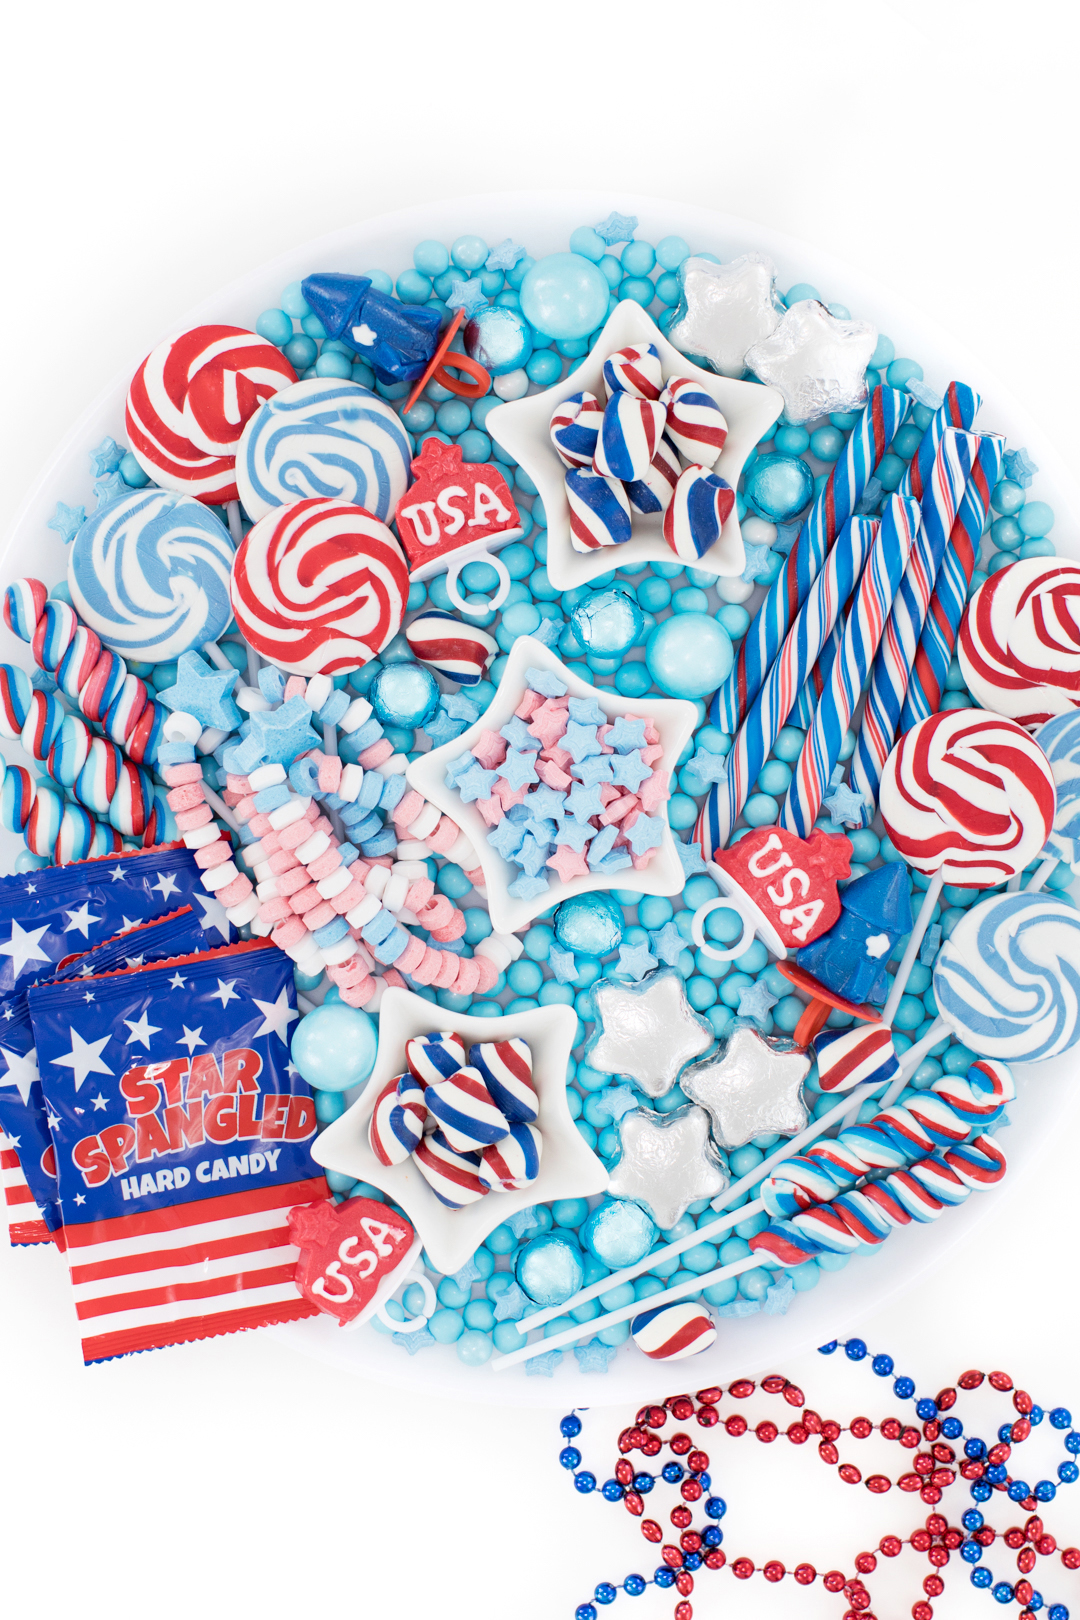 Pretty spread of patriotic candies on a tray. Perfect for parties.